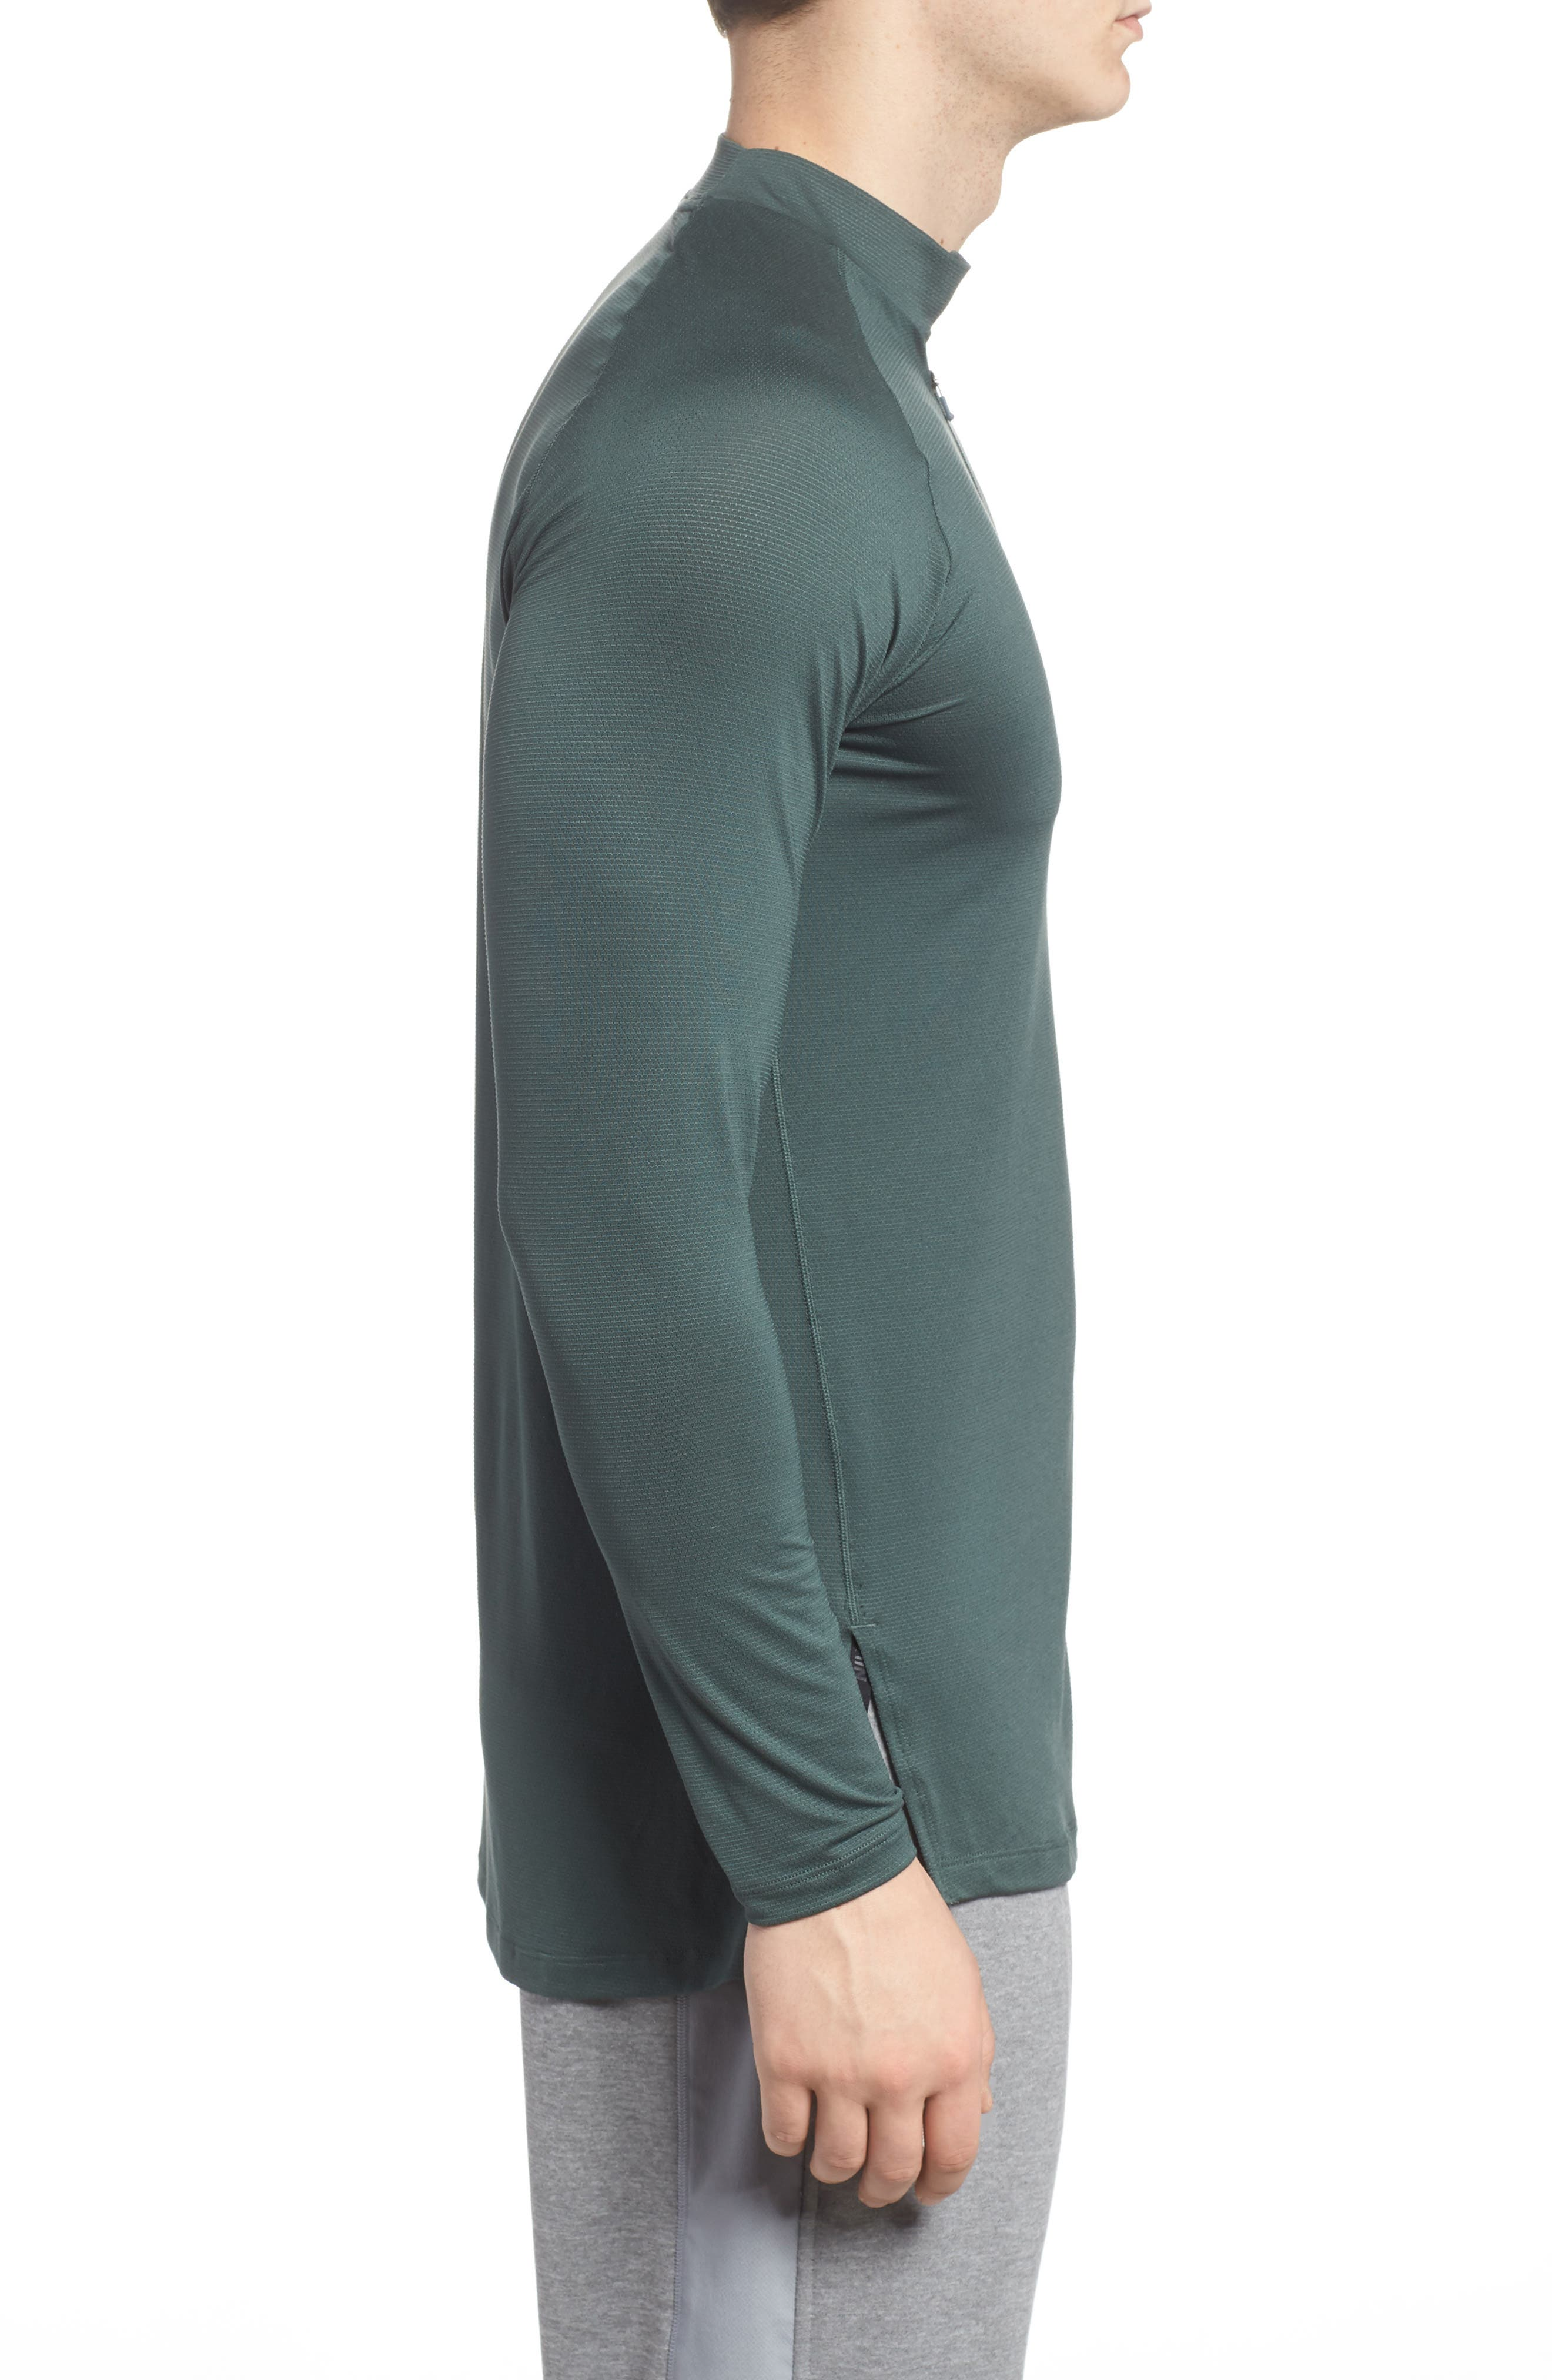 NIKE,                             Pro Fitted Utility Dry Tech Sport Top,                             Alternate thumbnail 3, color,                             VINTAGE GREEN/ BLACK